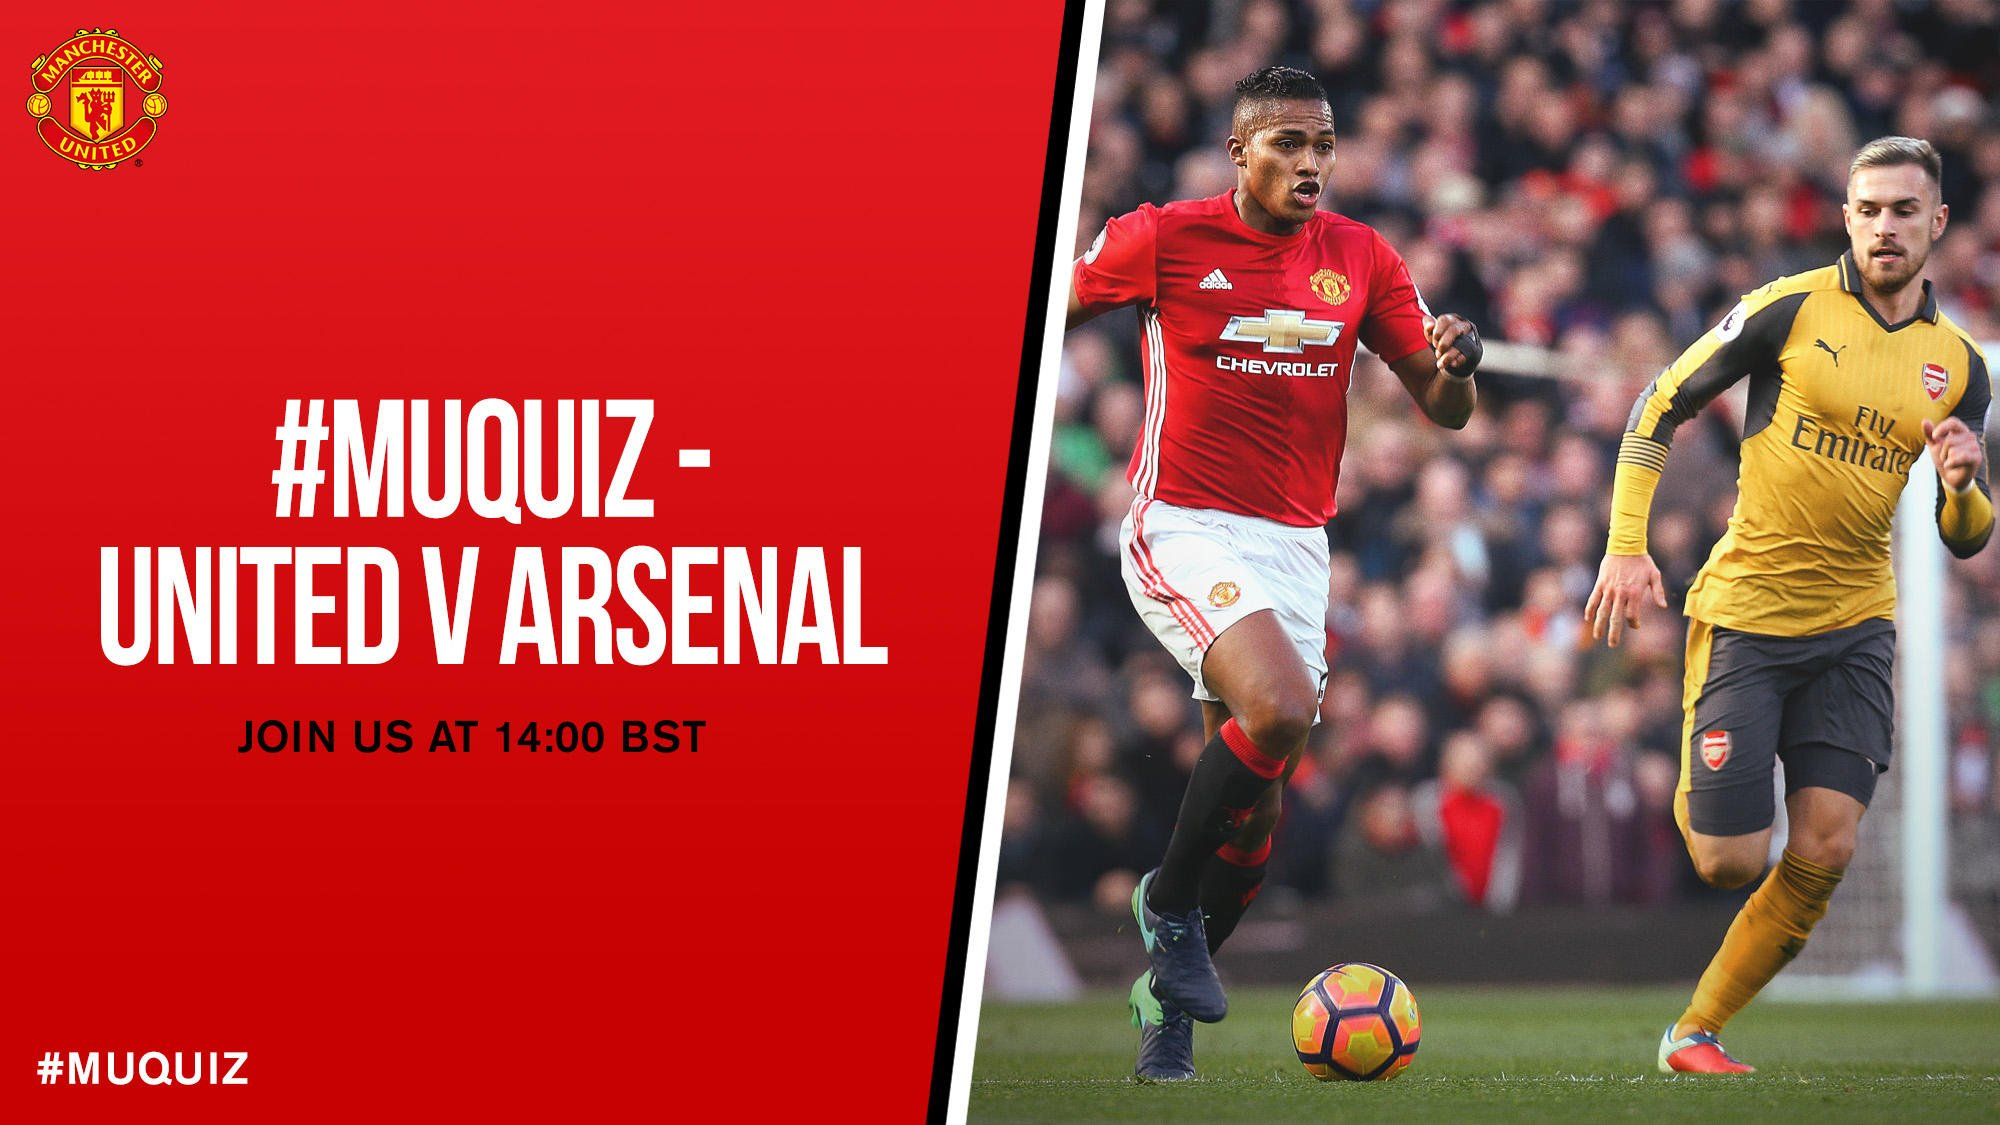 Our #MUquiz on past encounters with Arsenal at Old Trafford is coming up at 14:00 BST - don't miss it! #MUFC https://t.co/xq4Q3GxqNJ